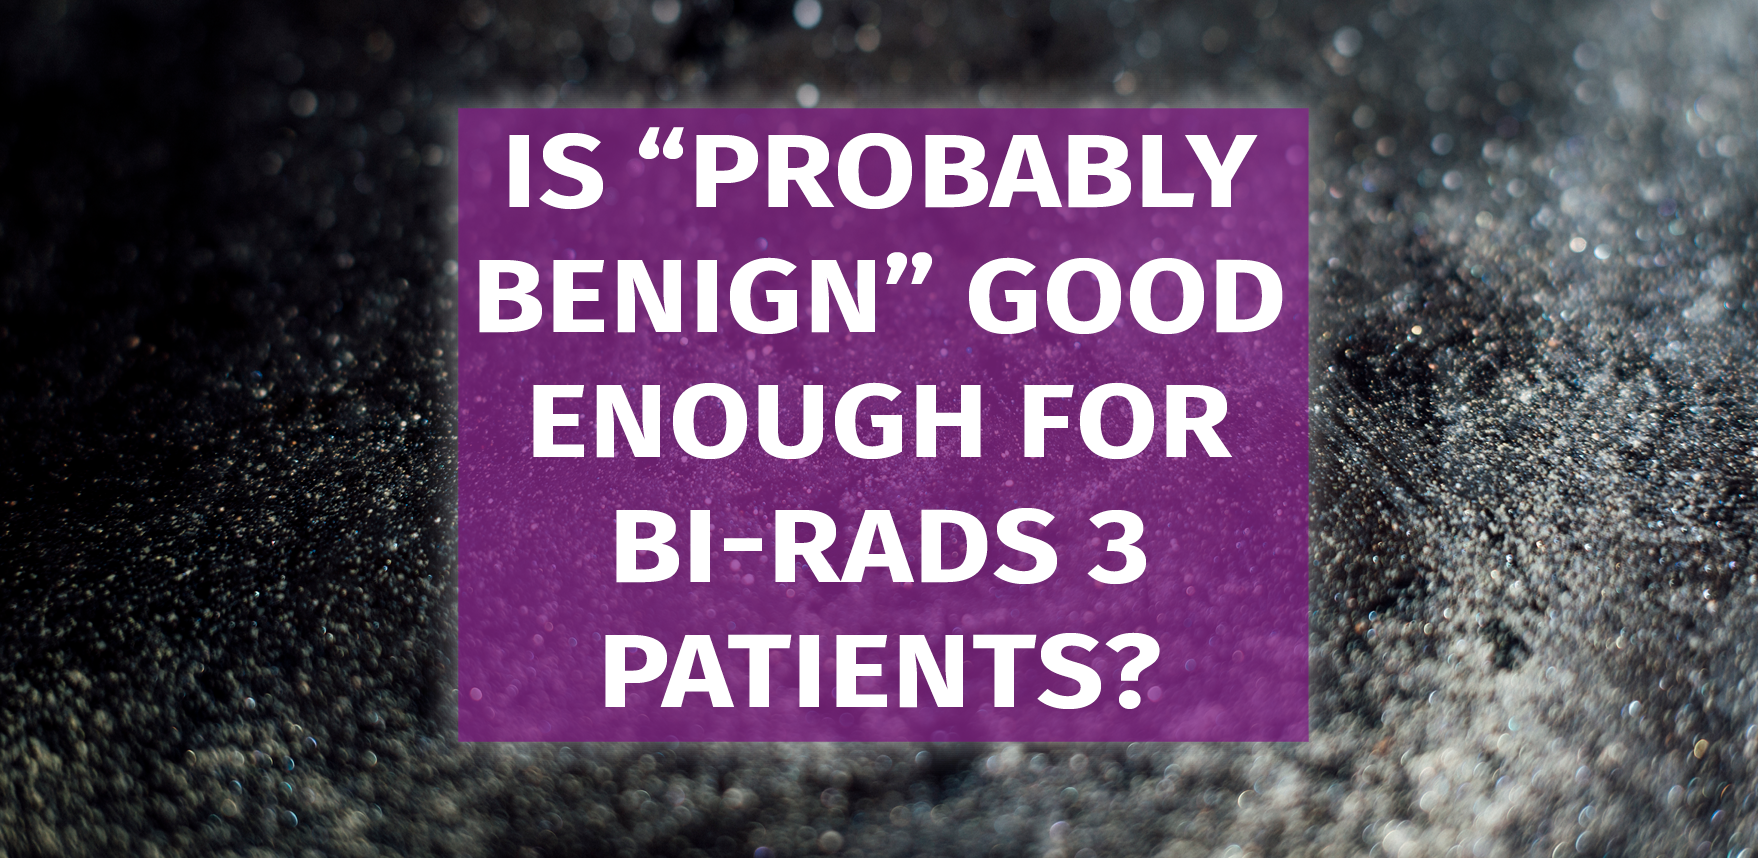 probably-benign-bi-rads-3-patients.png